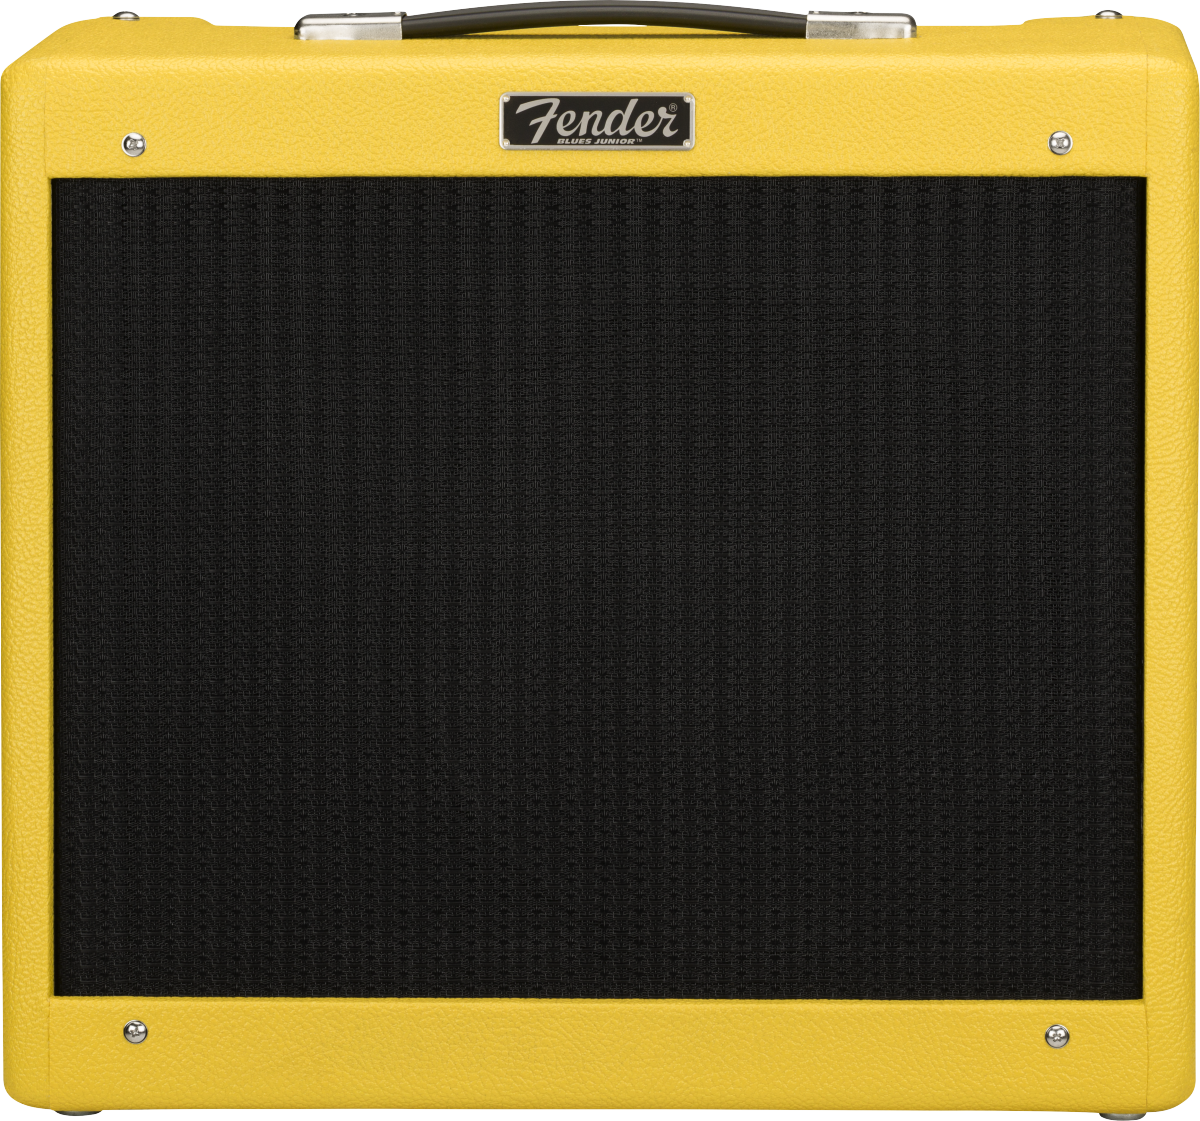 FENDER LIMITED EDITION BLUES JUNIOR IV - YELLOW SWAMP